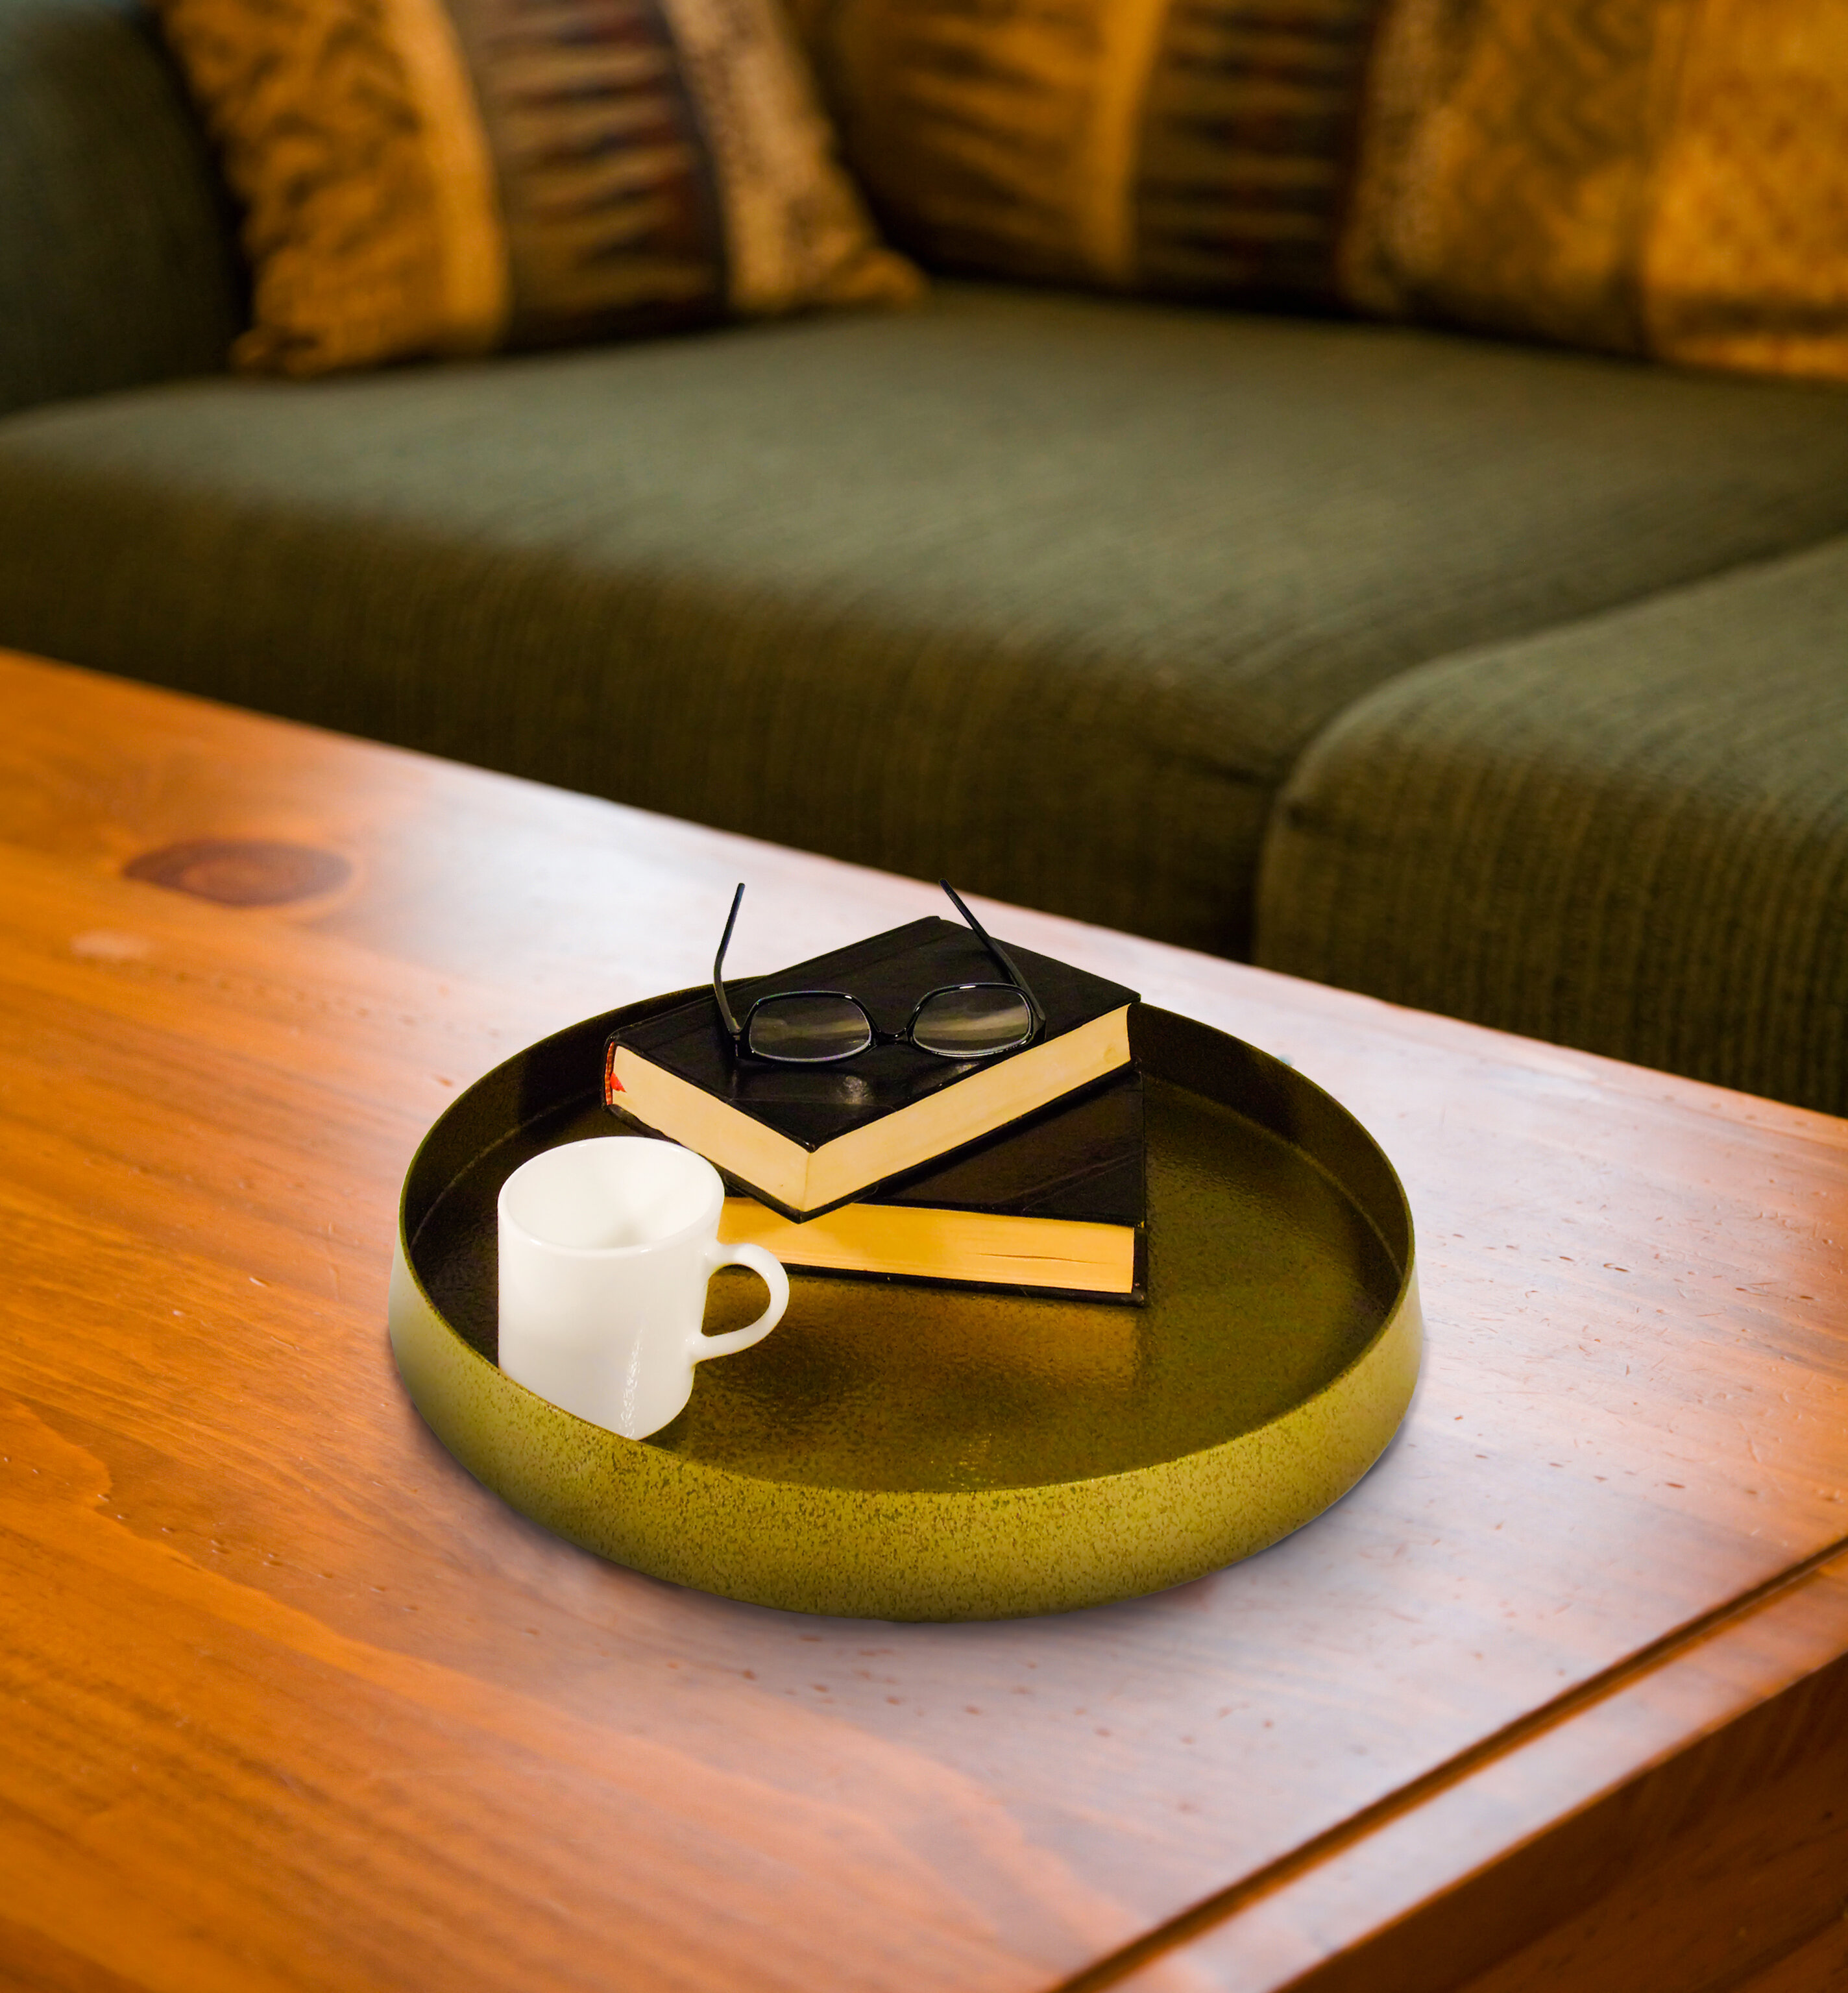 Ottoman Hexagonal Vintage Wood Serving Tray with Cutout Handles Nesting Serving Tray for coffee table Kitchen or Bed Large, Small Set of 2